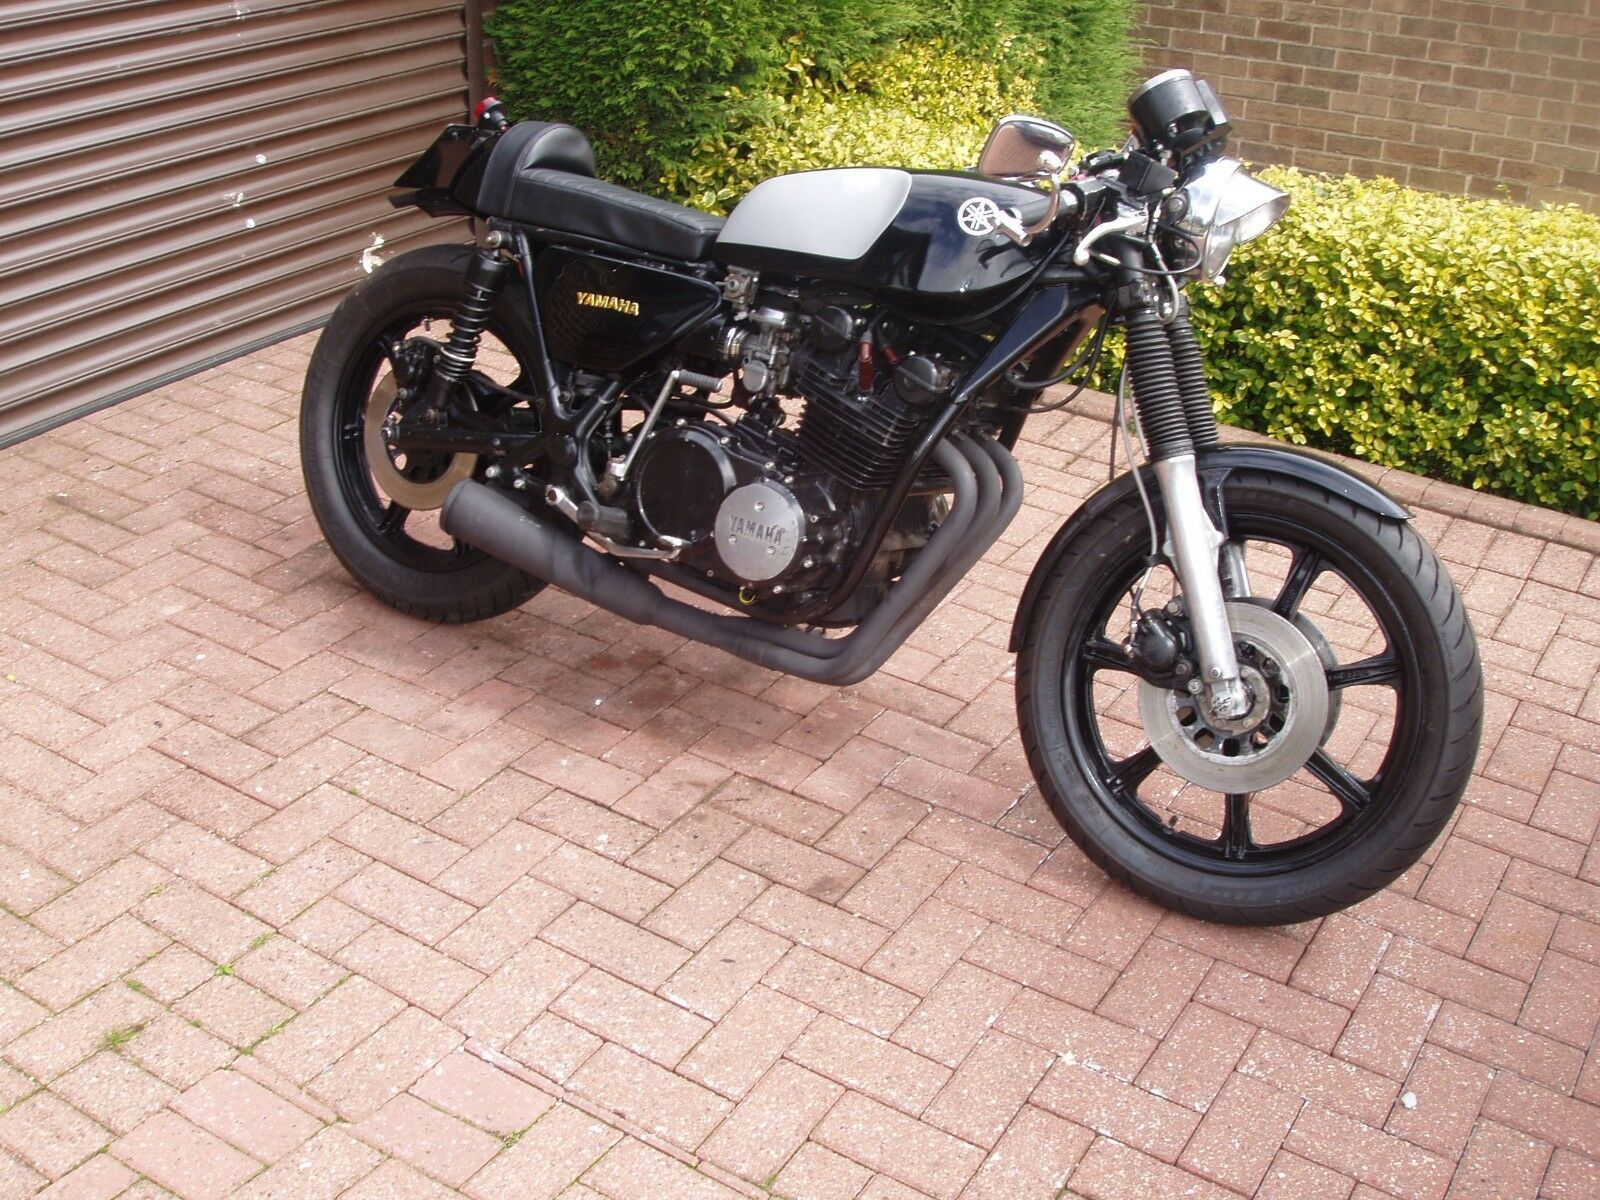 1978 yamaha xs750 cafe racer 1 of 5 See More